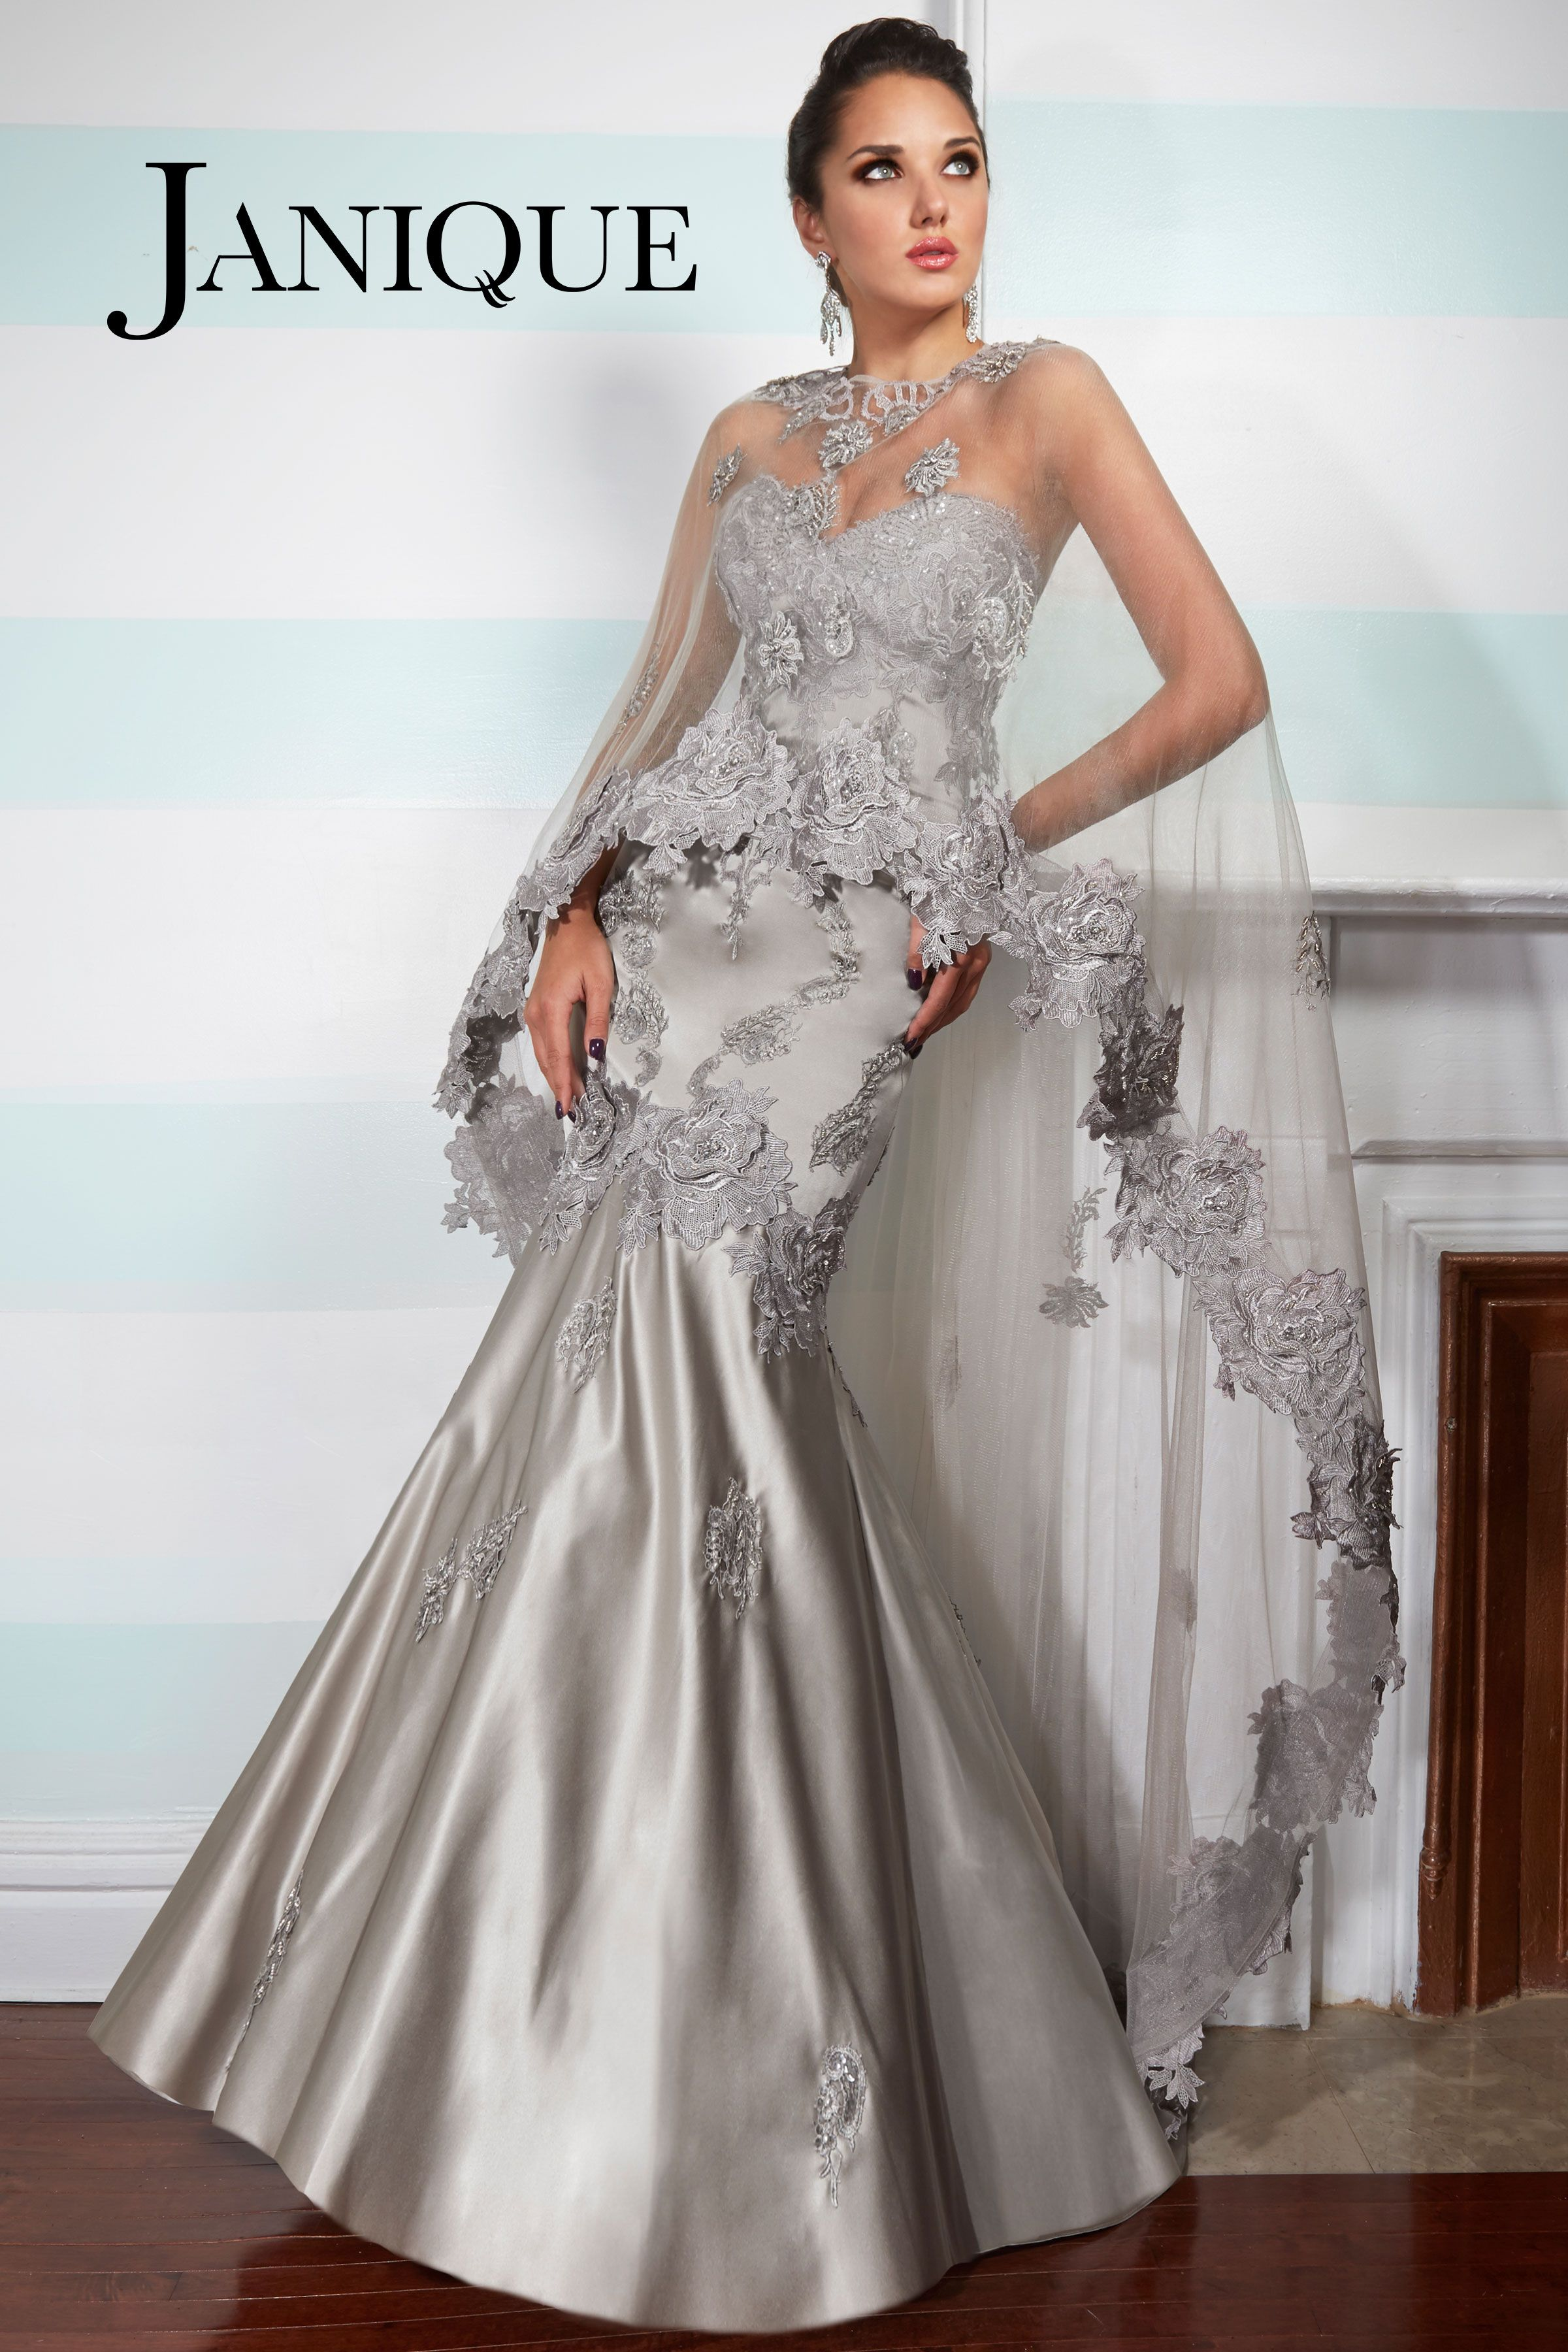 Janique JQ3412 2015 Collection. This dress is embellished